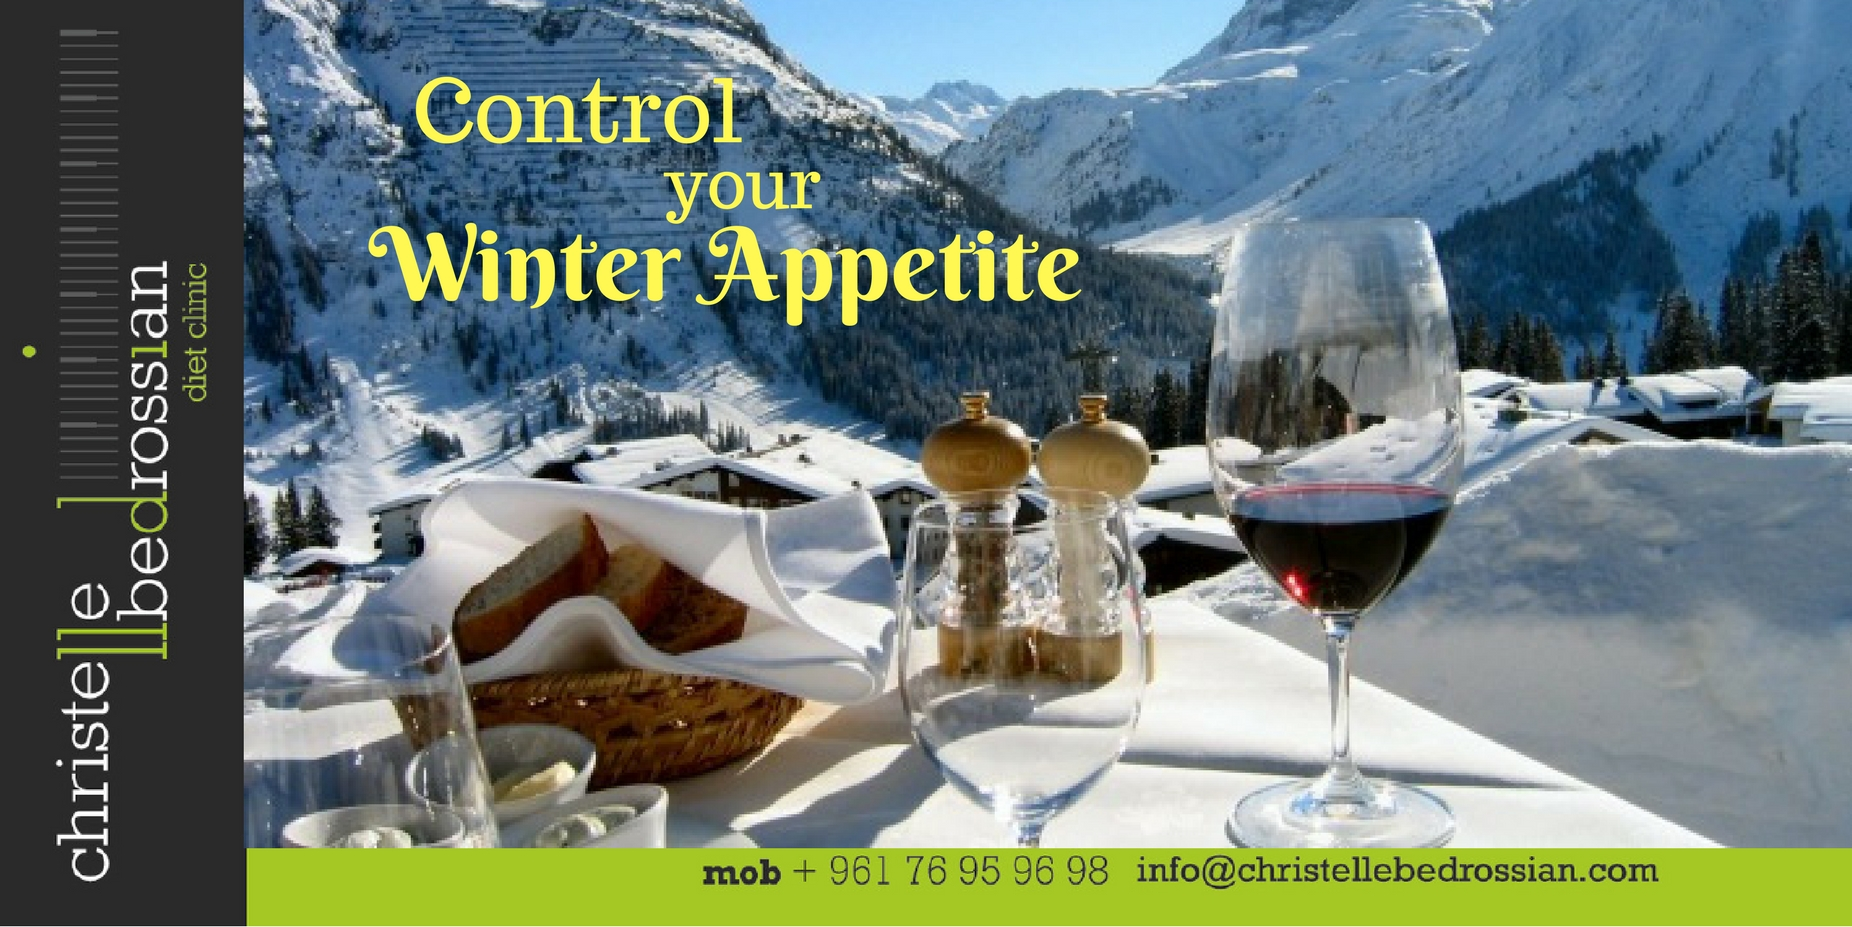 best dietitian lebanon, lebanon, diet, diet clinic, control your winter appetite